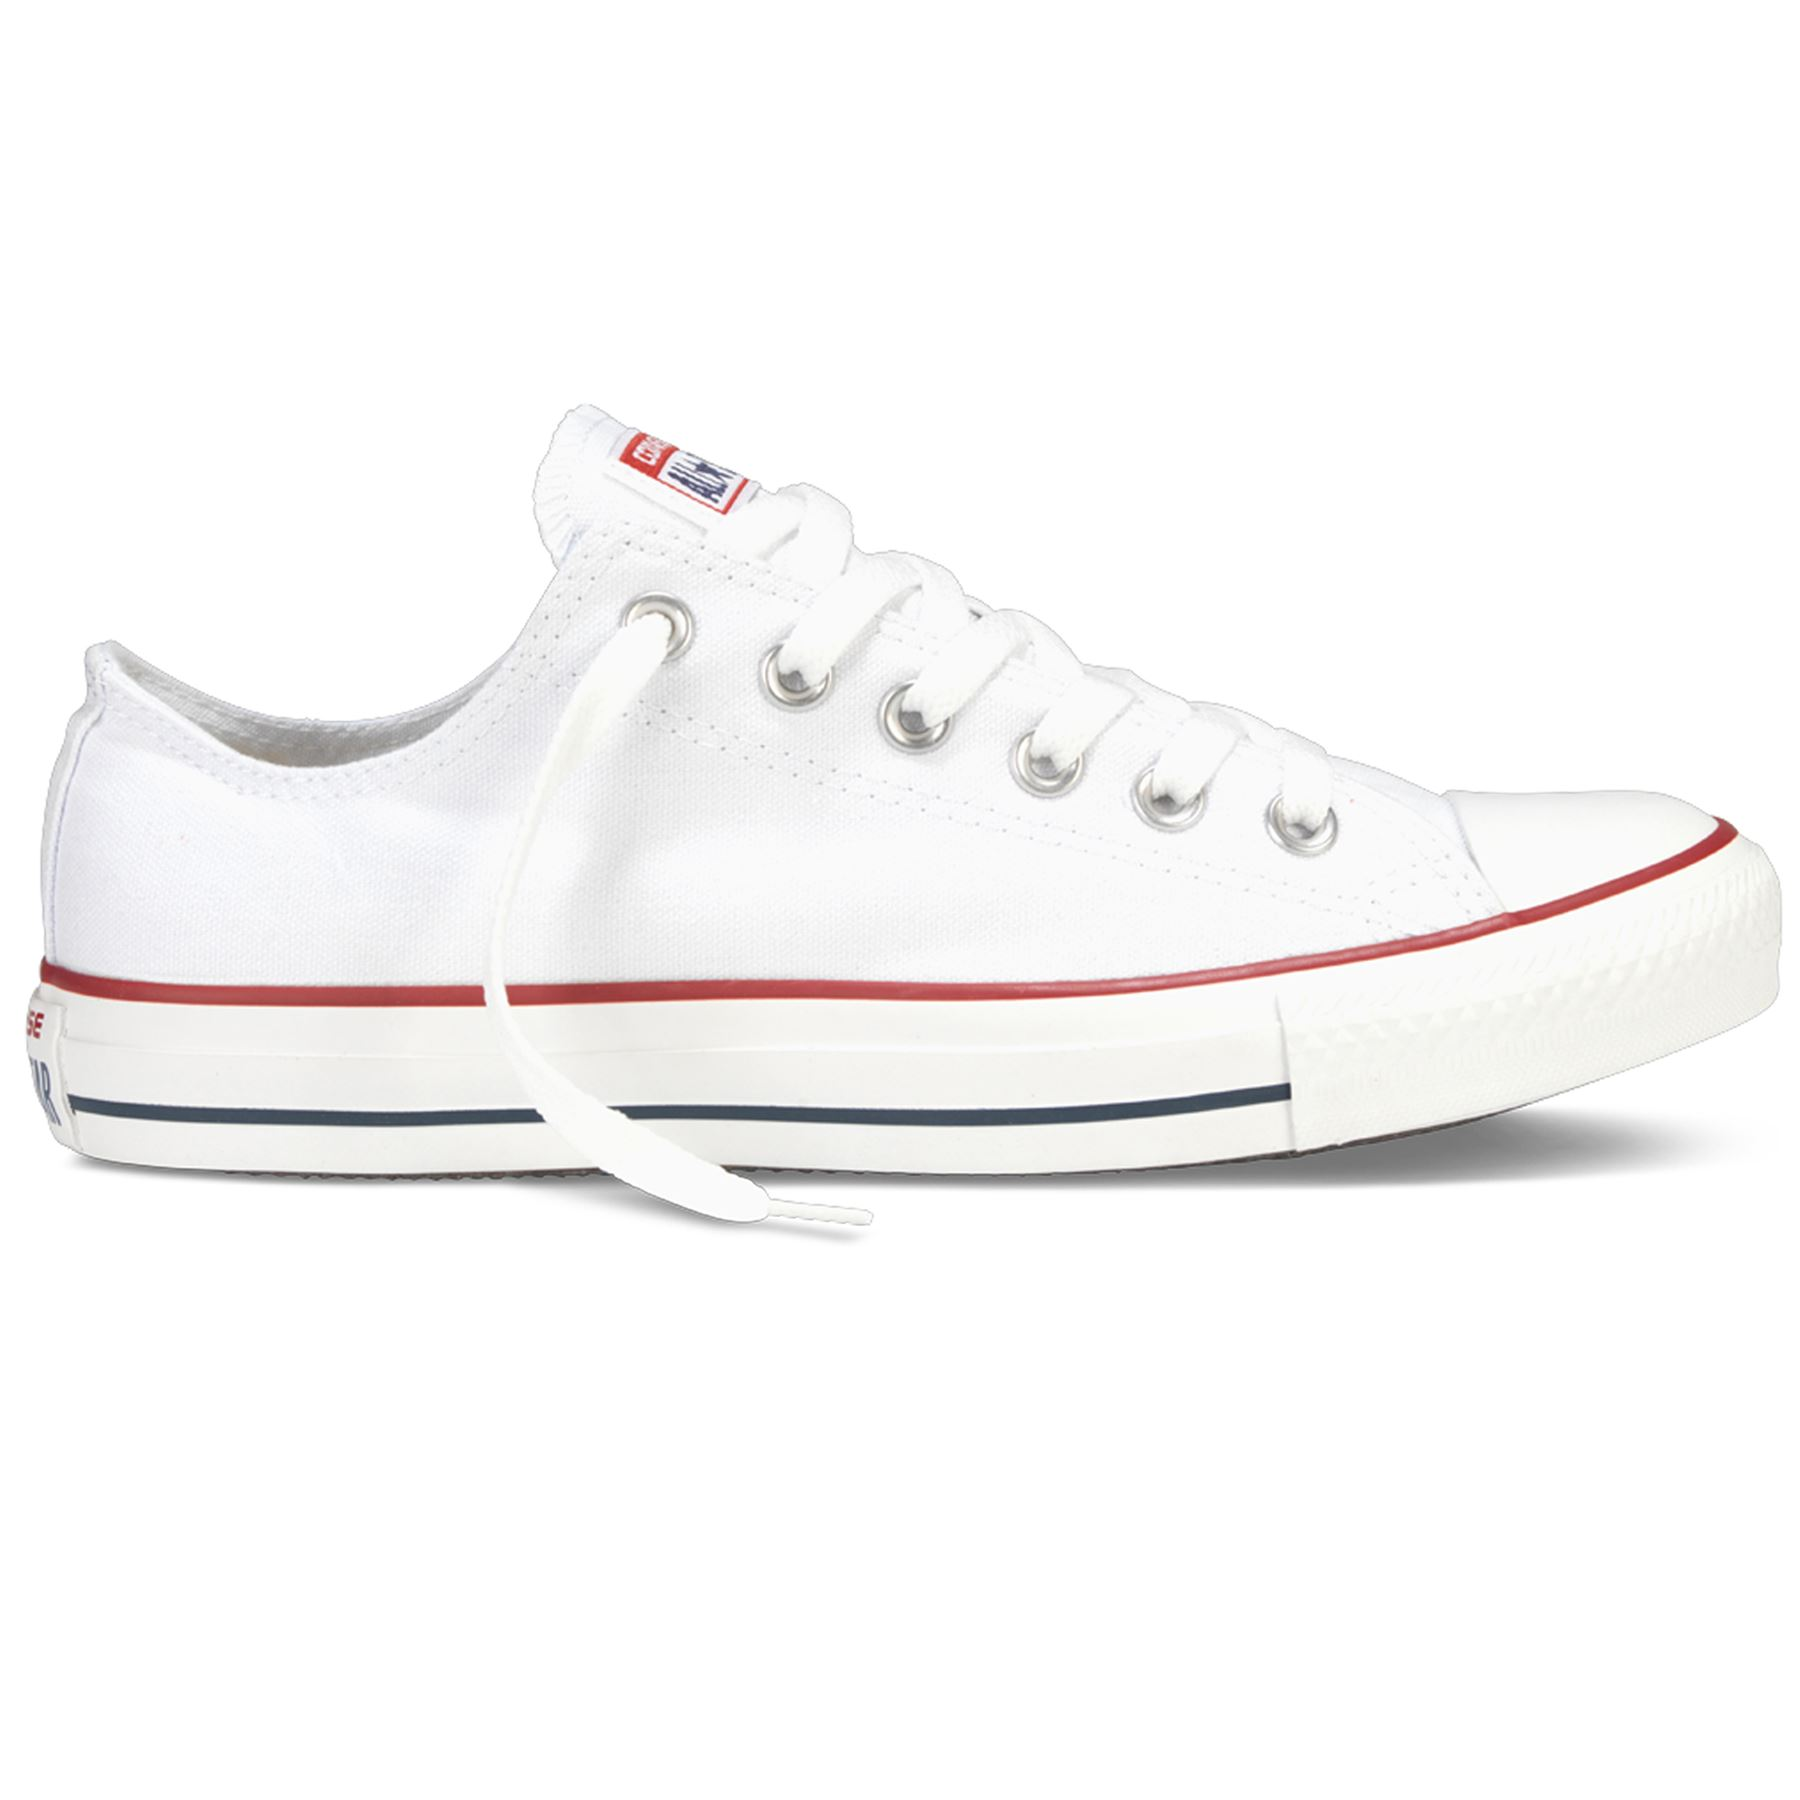 Converse-All-Star-Unisex-Chuck-Taylor-New-Mens-Womens-Low-Tops-Trainers-Pumps thumbnail 29